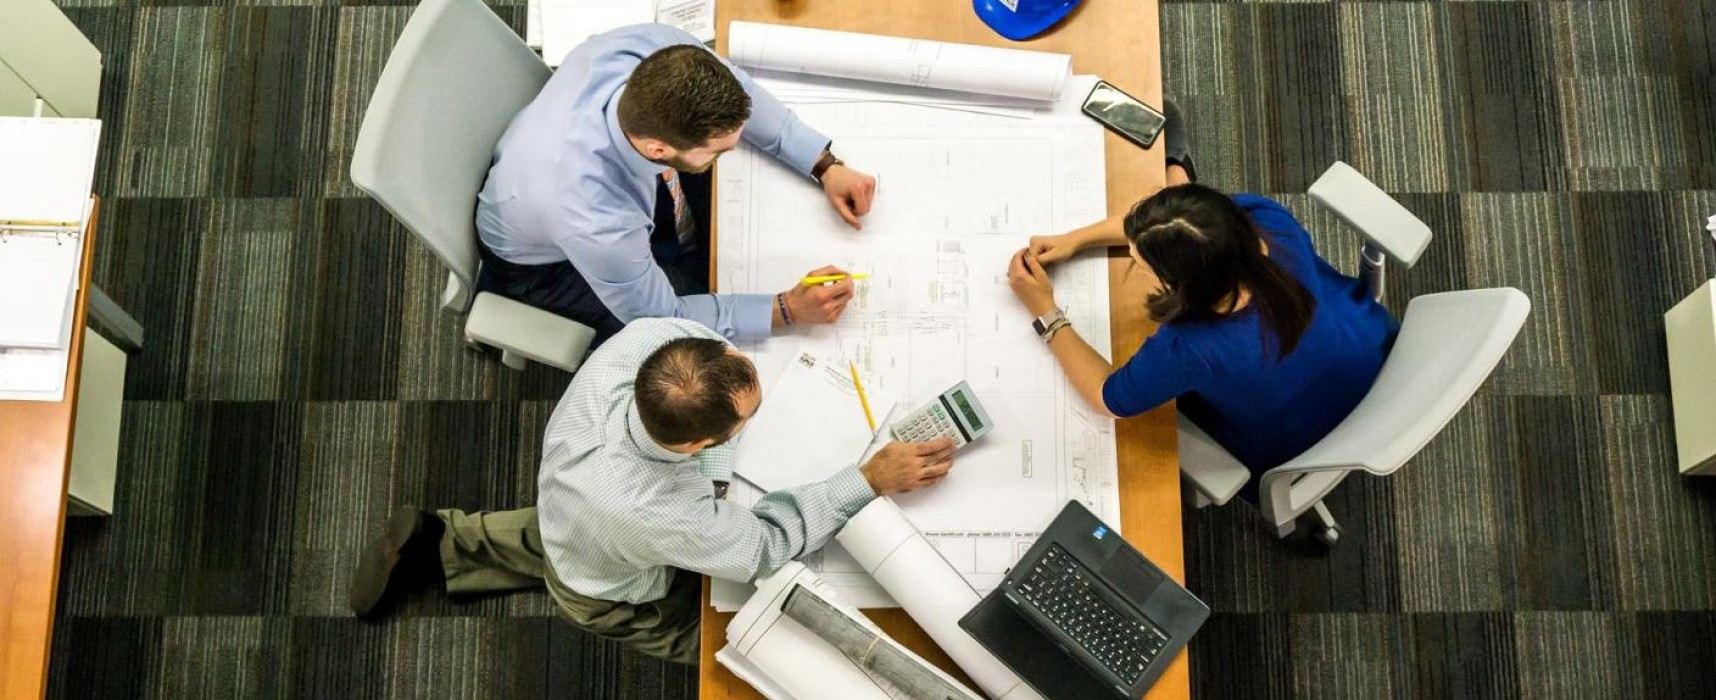 How Best to Choose an Architectural Firm for Your Project